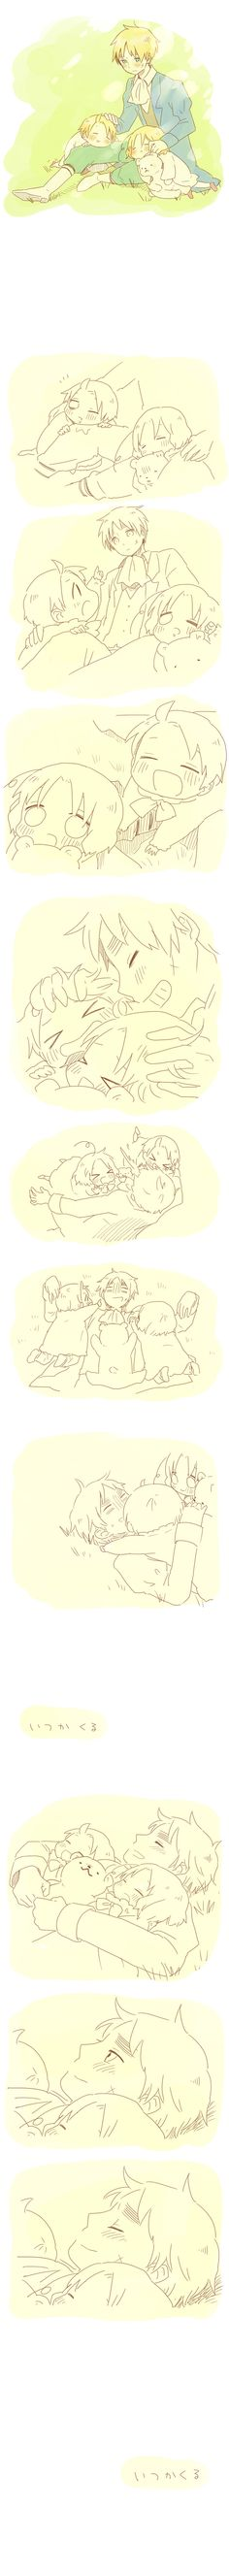 Arthur with little Alfred and Matthew - and...he just got glomped. So cute! - Artist unknown